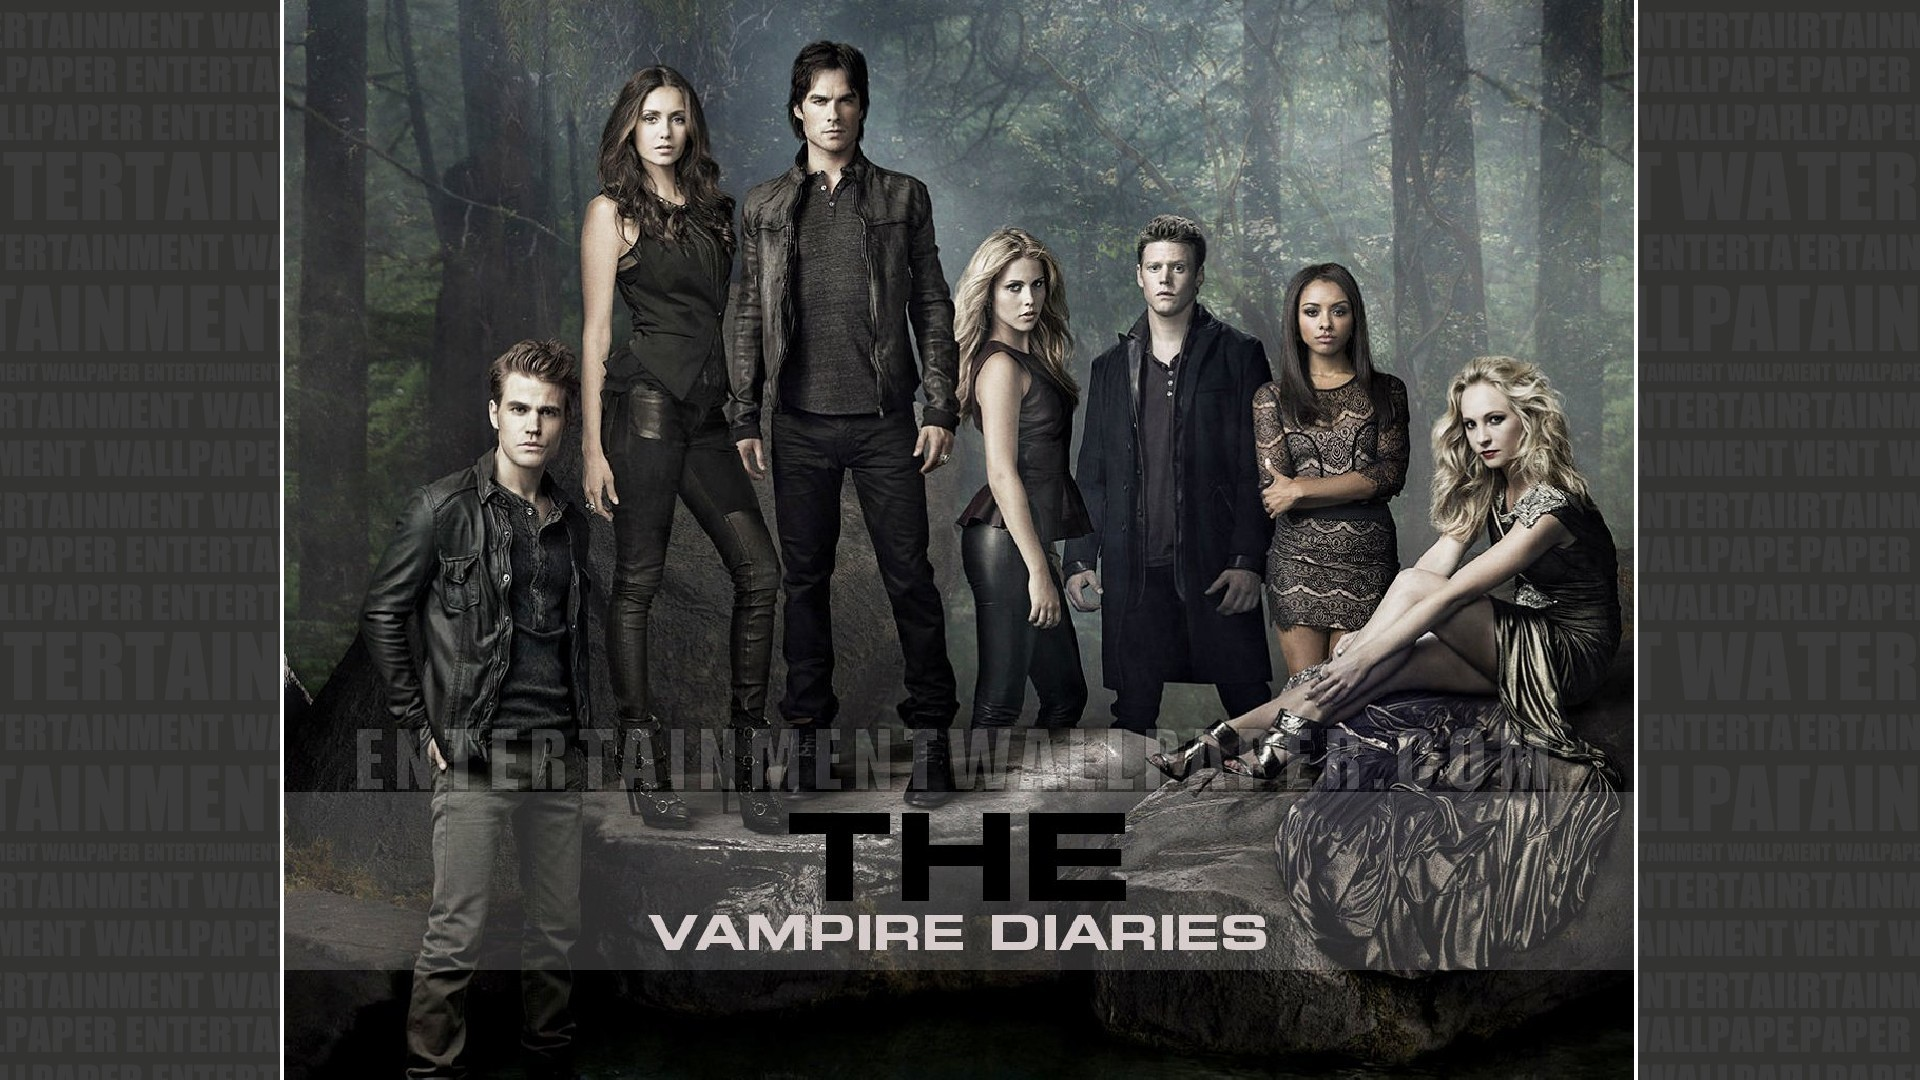 Wallpaper The Vampire Diaries: Vampire Diaries Wallpapers (77+ Images